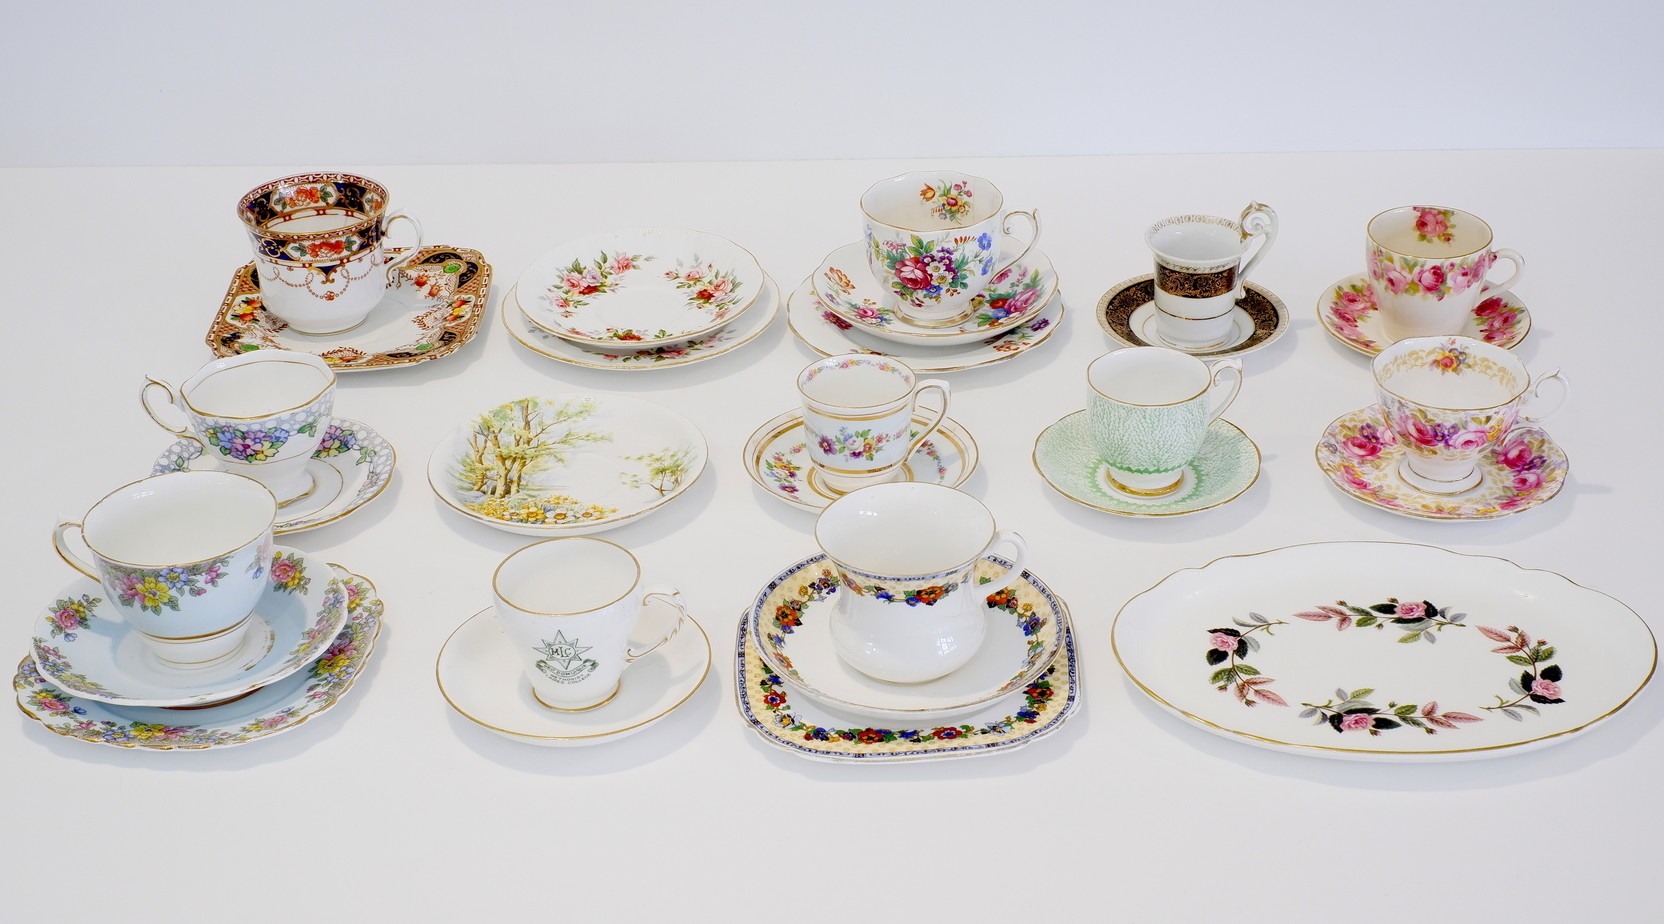 'Various English China Cups, Saucers, Plates etc'